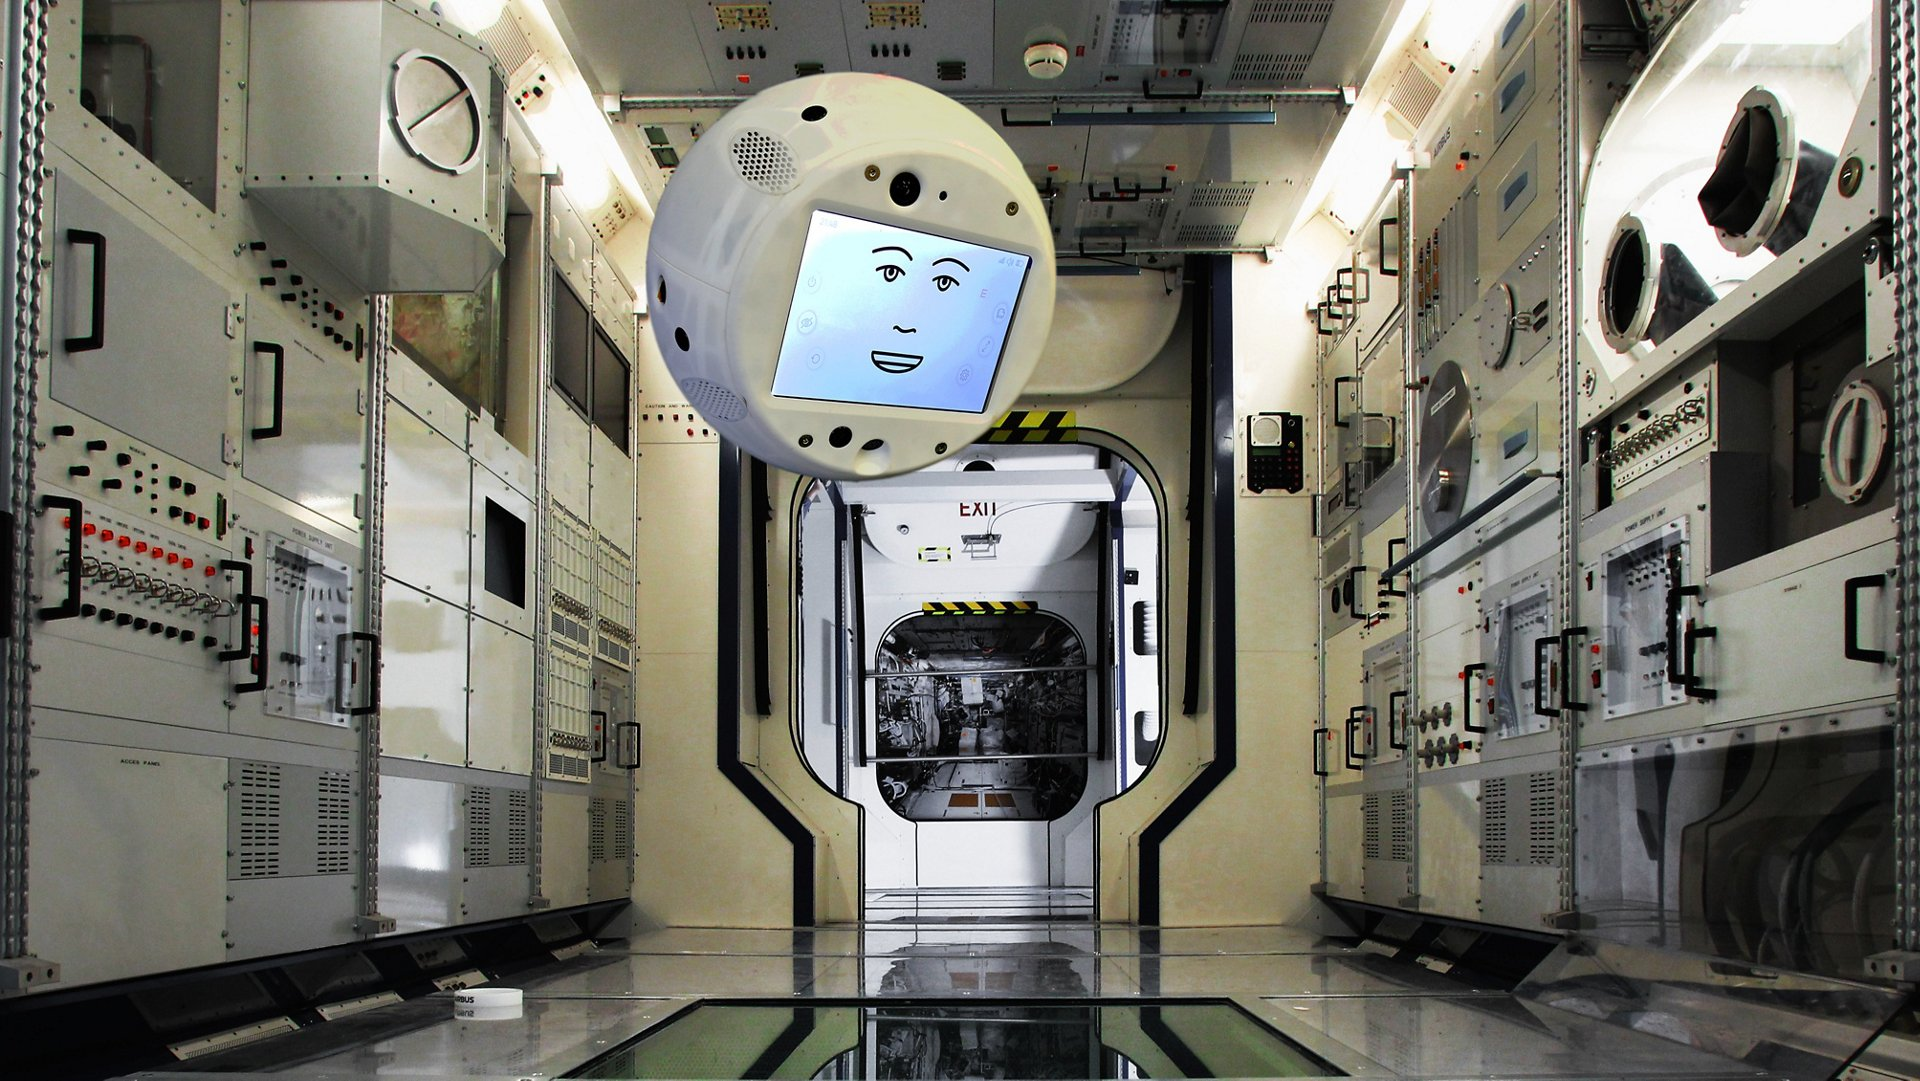 Meet CIMON: The Floating AI That Will Live on the International Space Station | All3DP